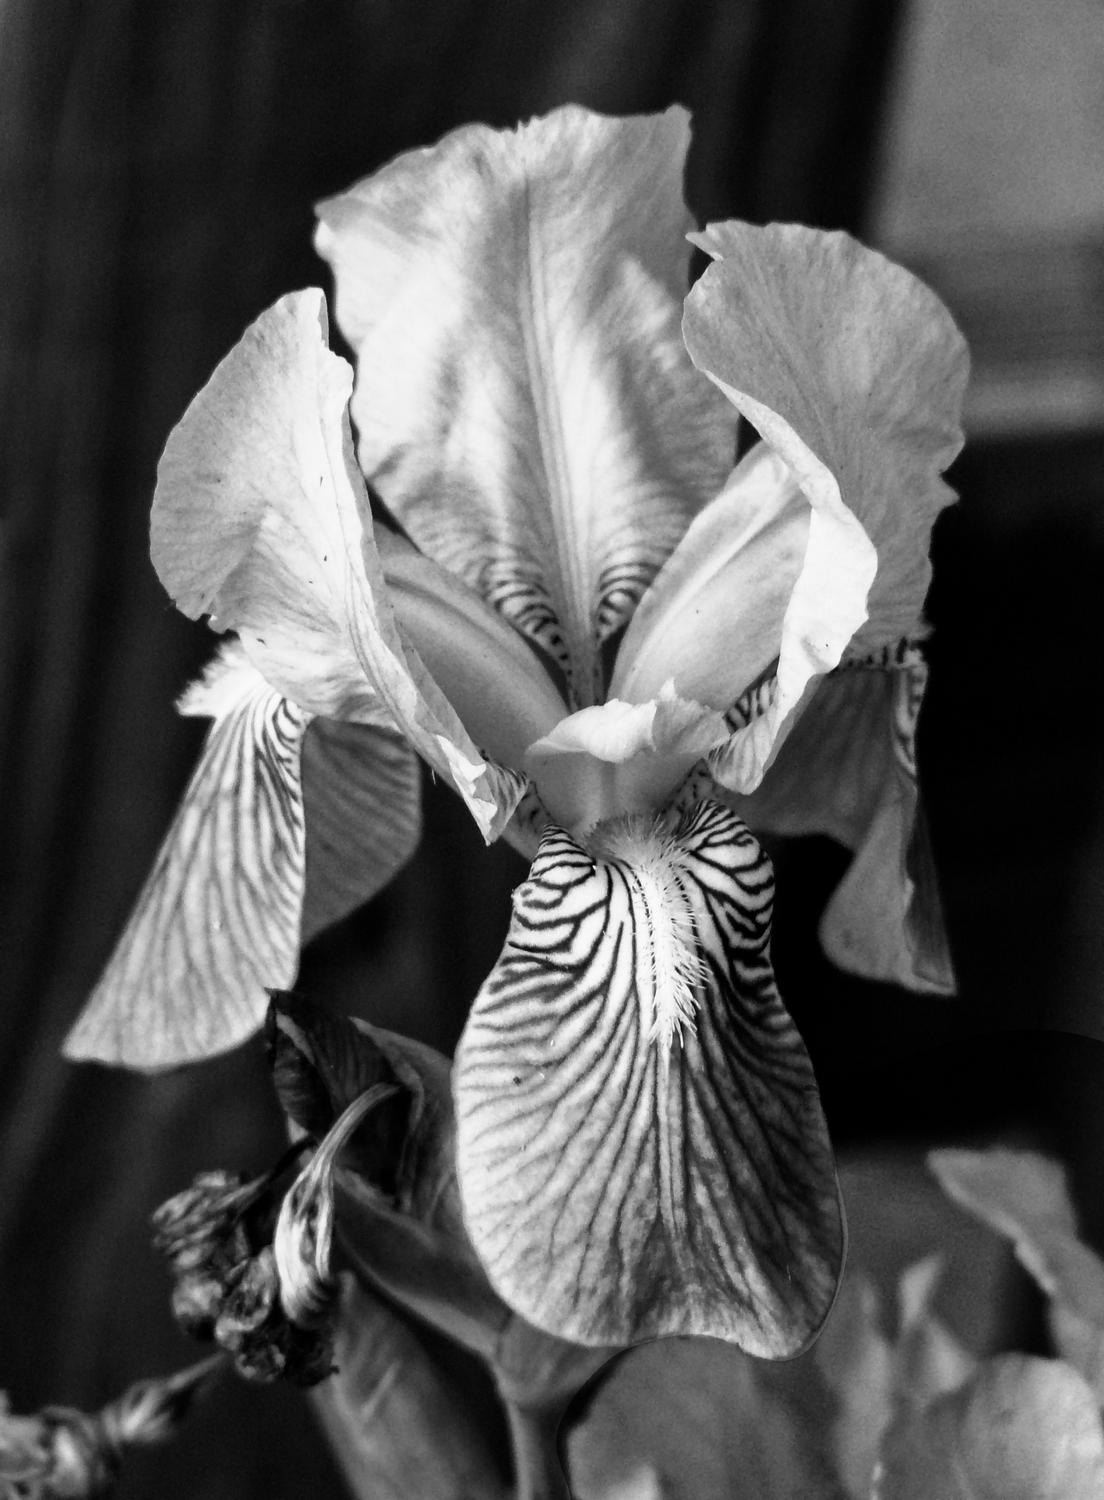 - The Iris, reduced to black and white. - Panasonic DMC-FZ18 - iris - many variations on one photograph - Tony Karp, design, art, photography, techno-impressionist, techno-impressionism, aerial photography , drone , drones , dji , mavic pro , video , 3D printing - Books -